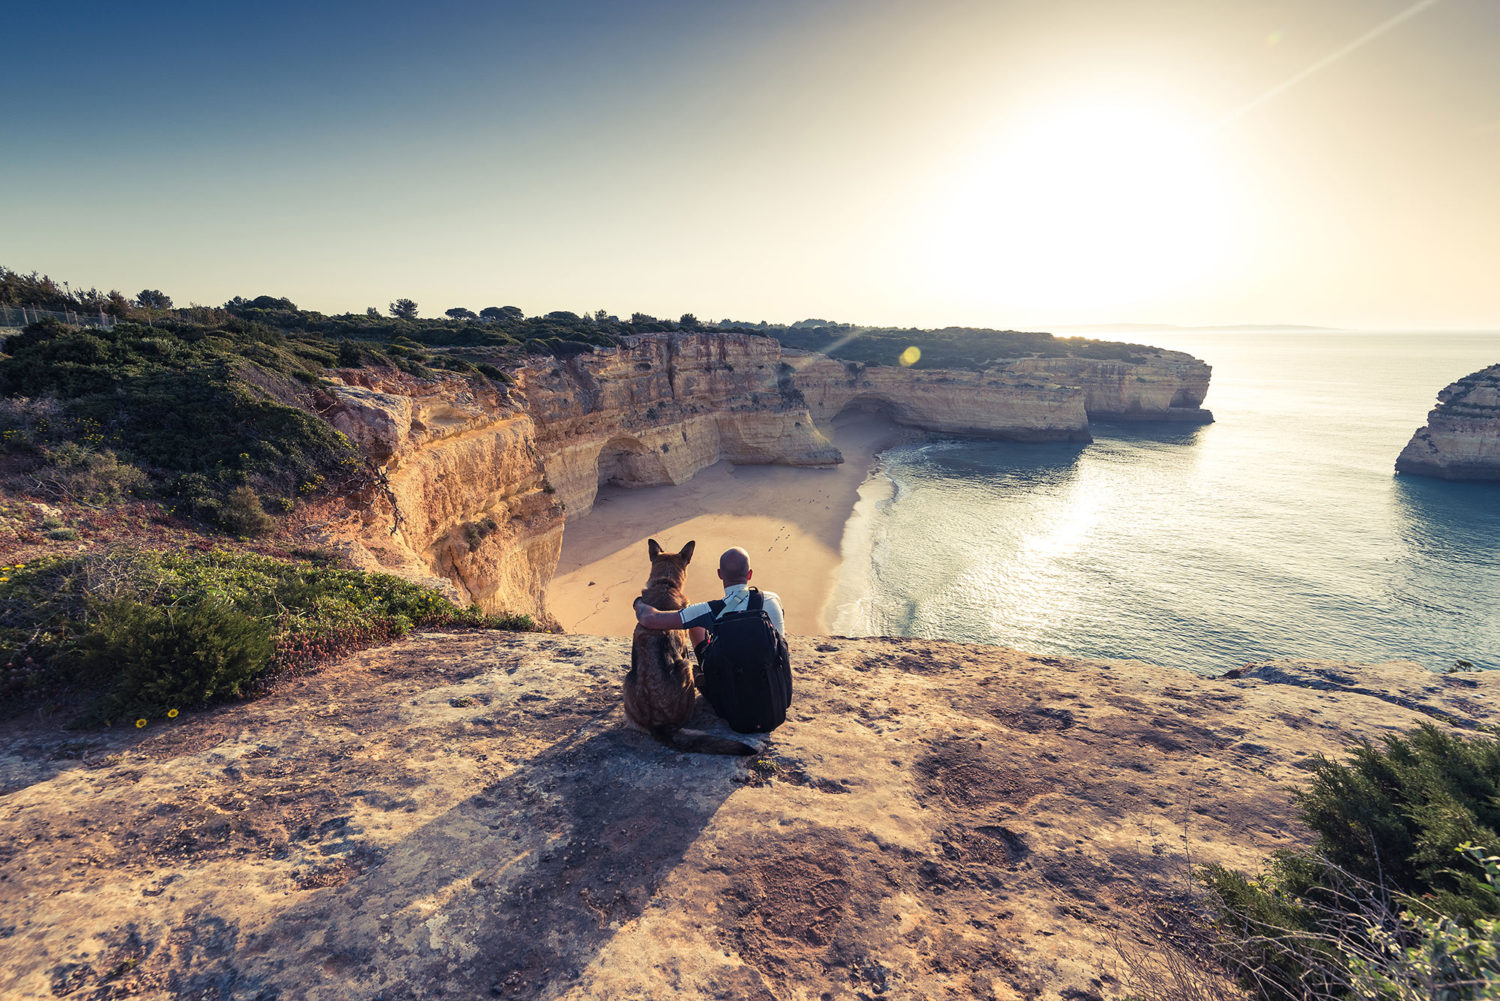 Man and dog overlooking seaside cliffs in Portugal